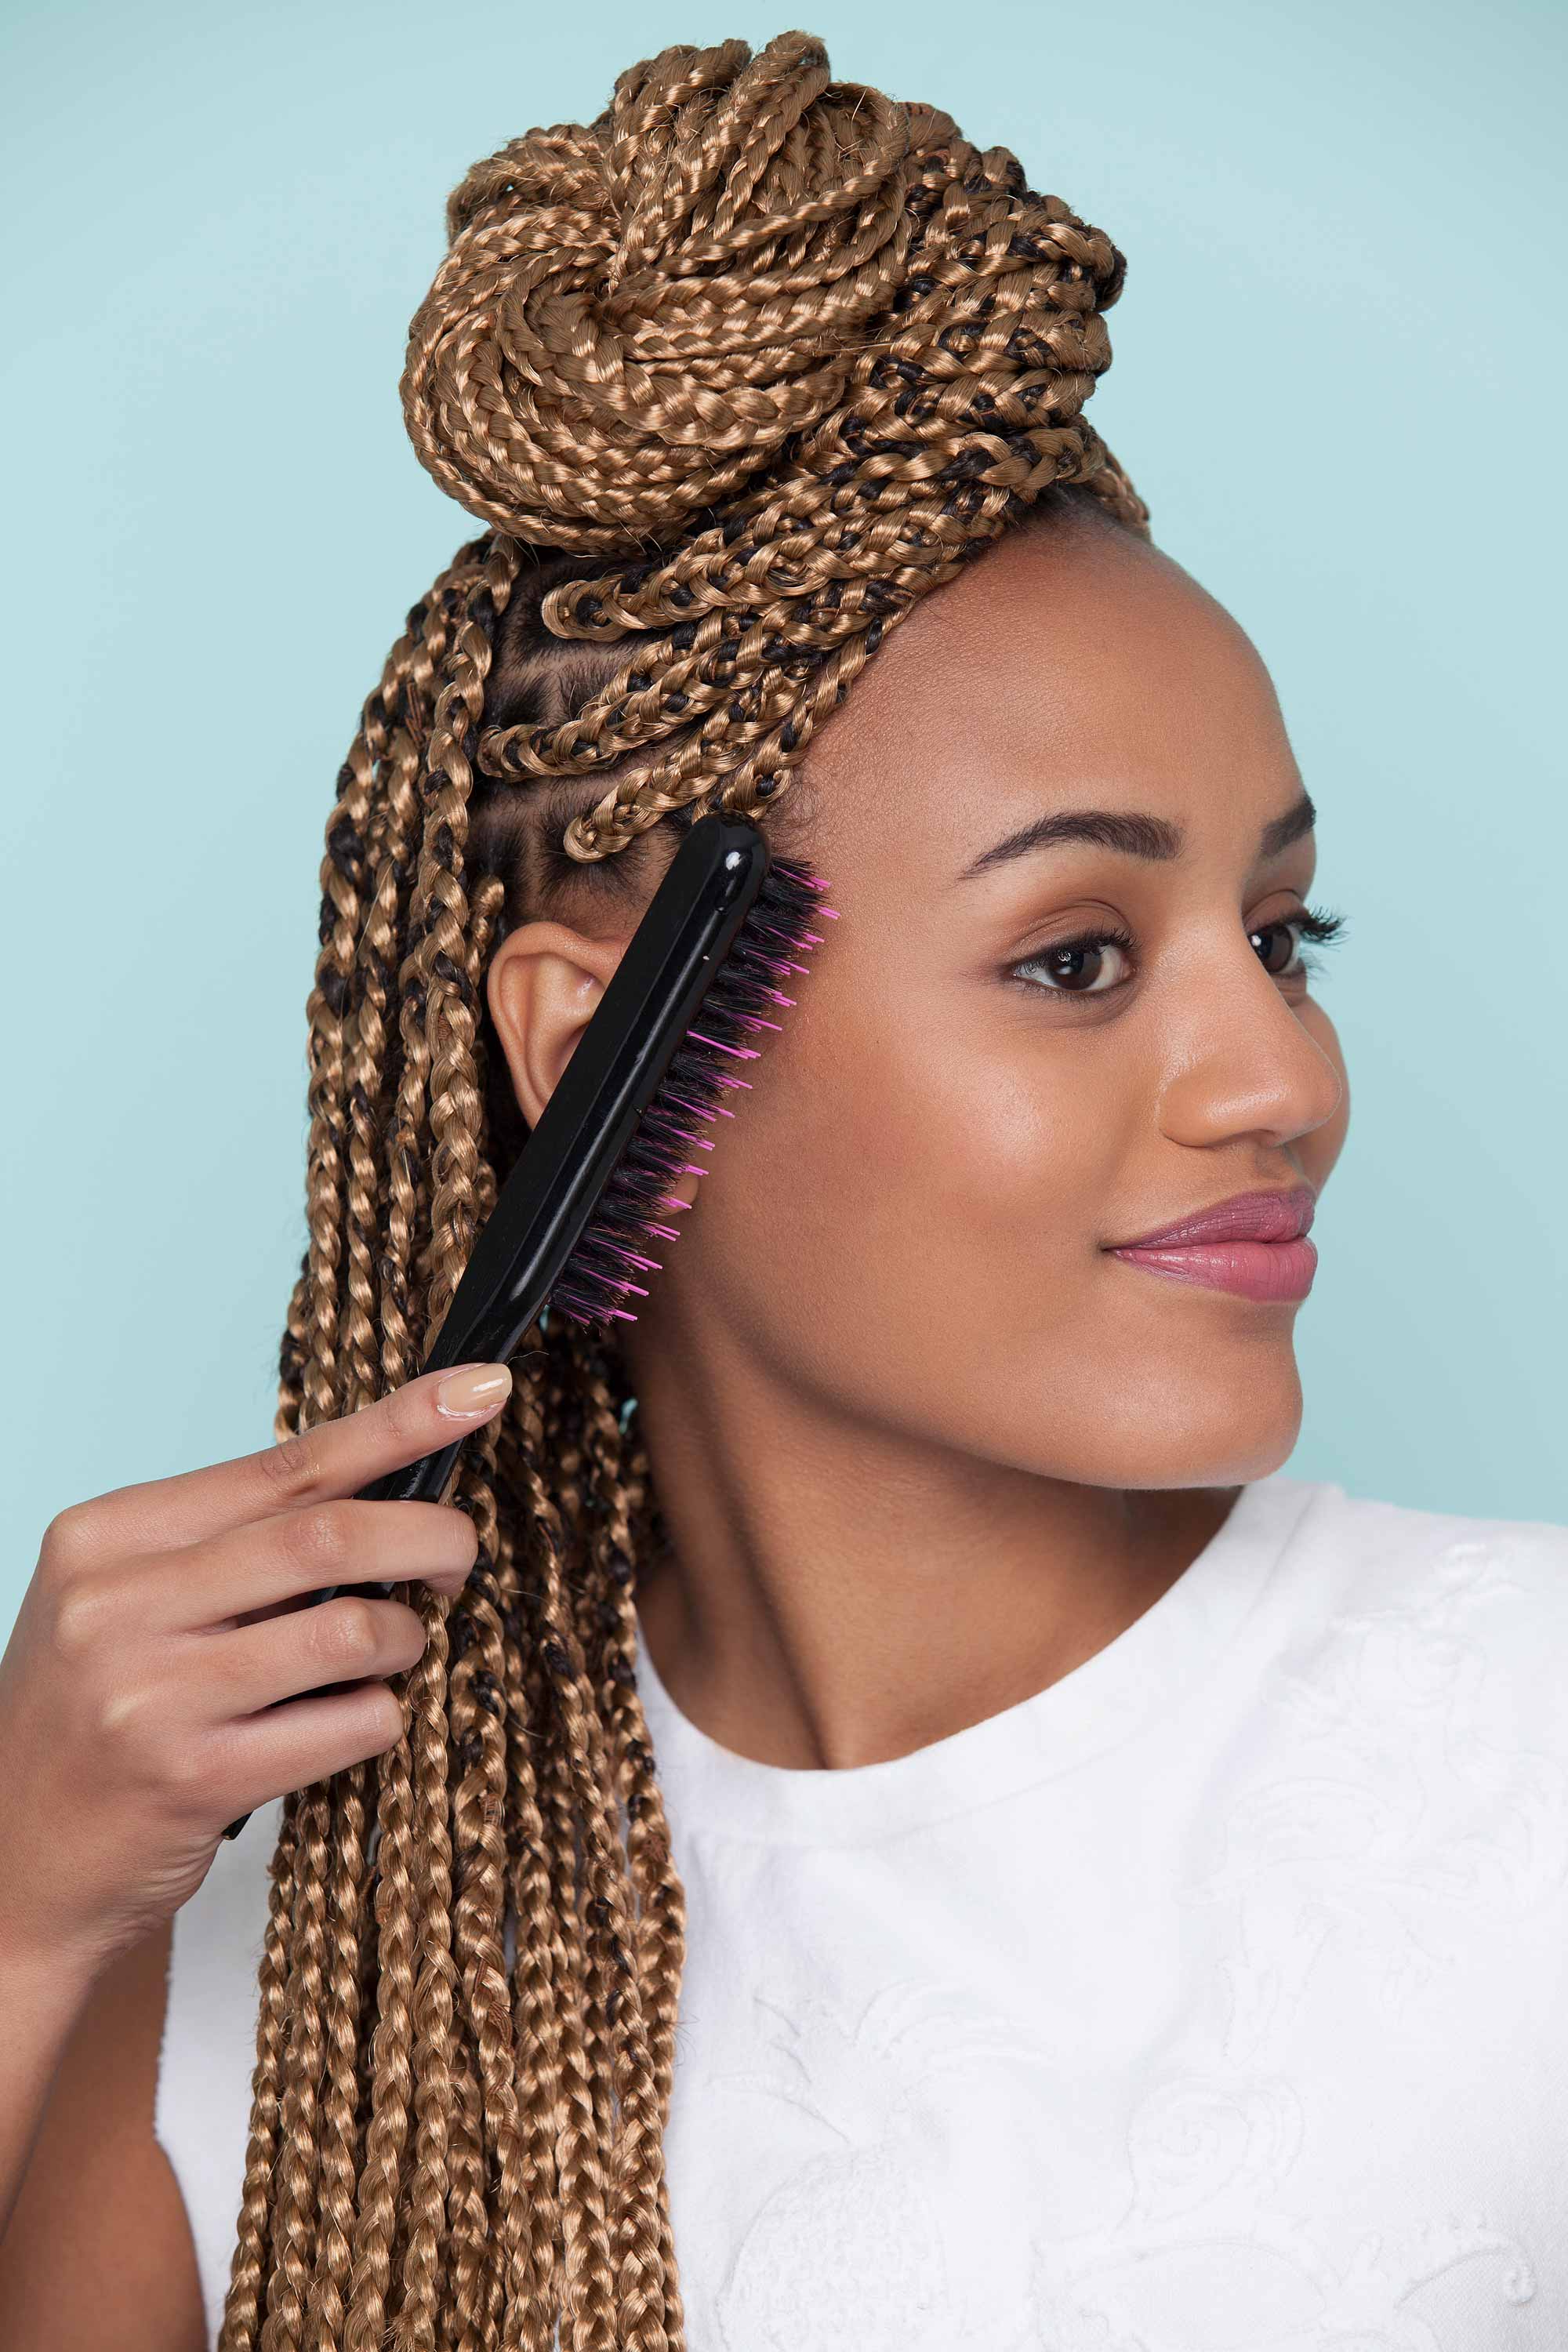 Newest Dookie Braid Bump Hairstyles Inside Hairstyles : 10 Supercute Styles With Box Braids To Wear Now (View 17 of 20)